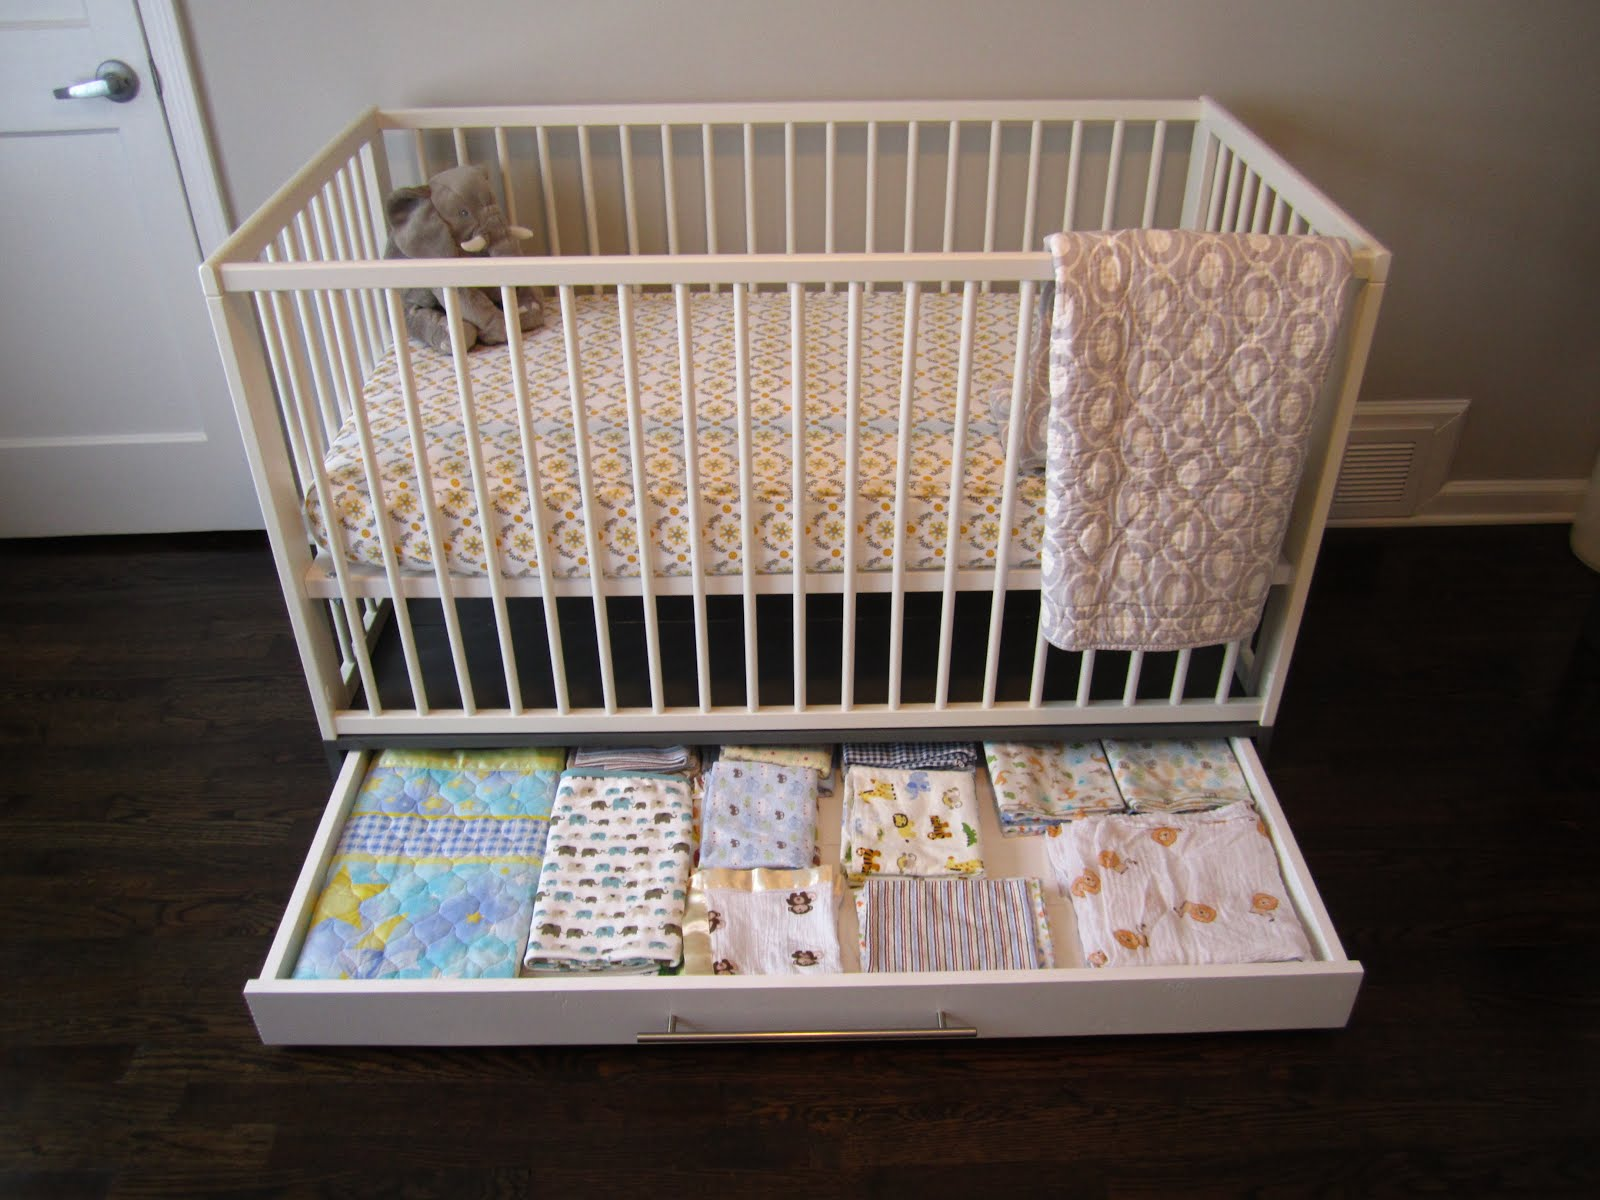 canada cribs with mattress larger l ikea s baby great hensvik condition crib gulliver view door white